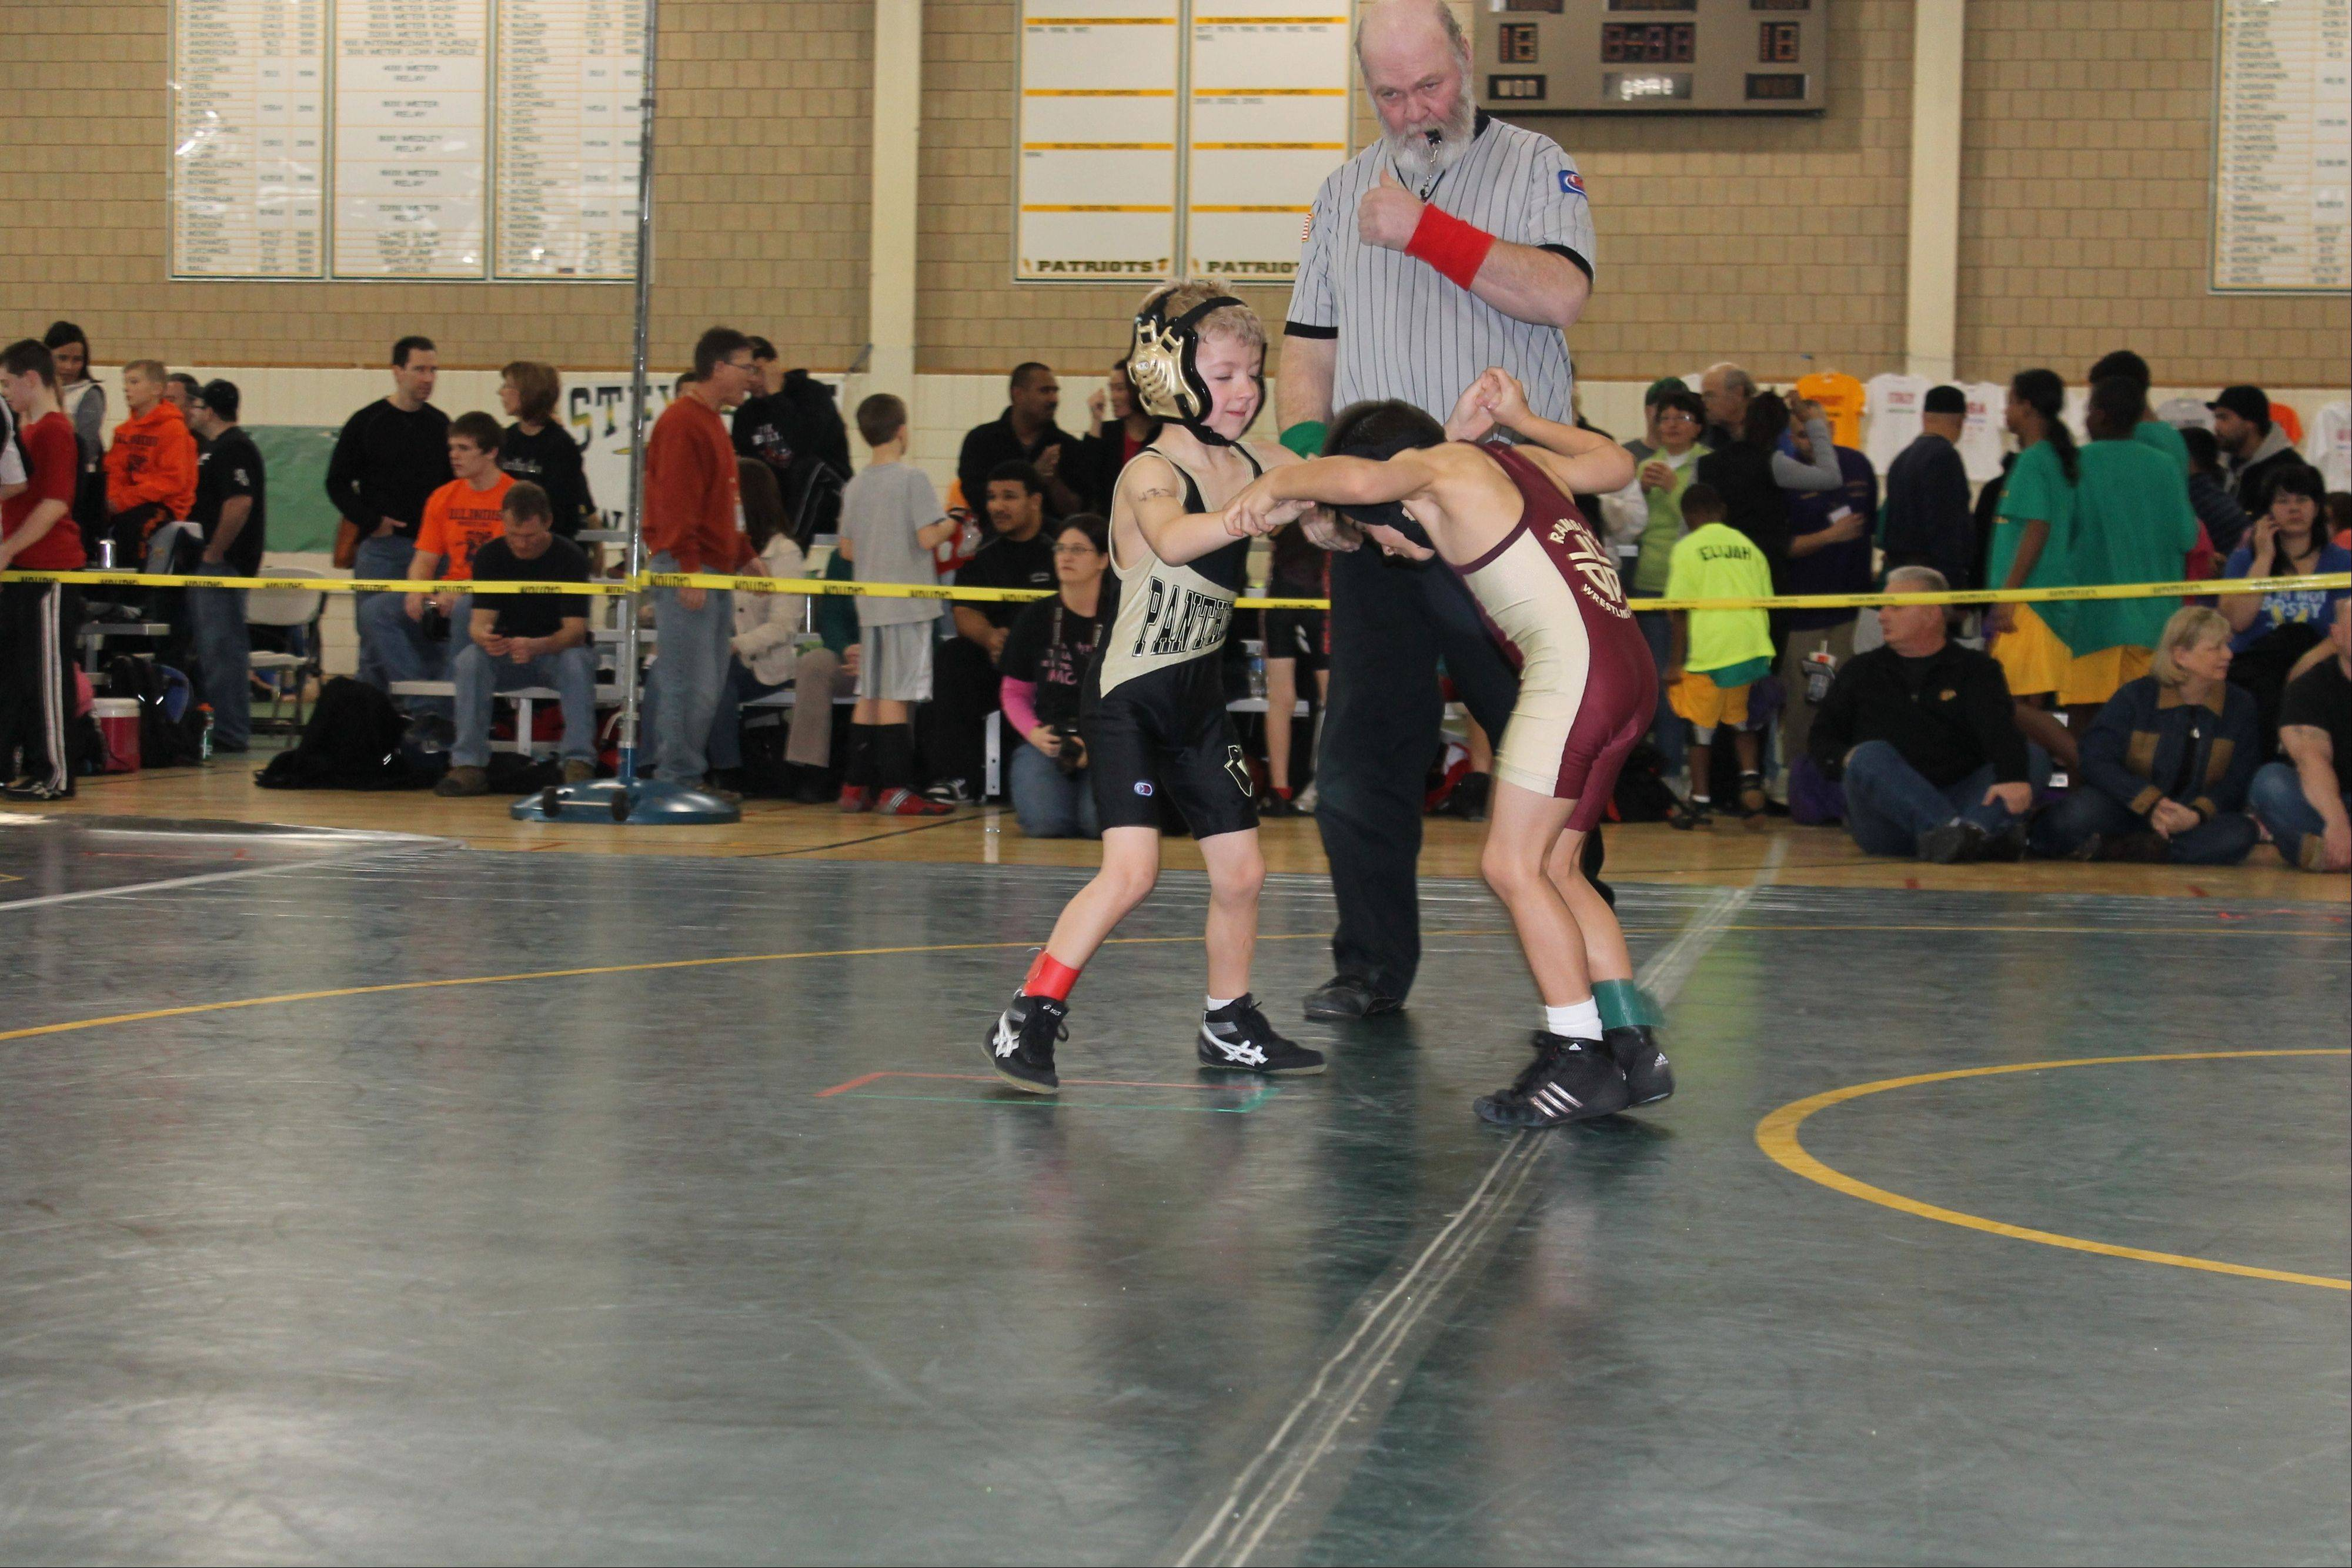 Ryan Burton participates in the 2011-2012 season of the Palatine Park District's Panthers Wrestling program. The program, which provides children the opportunity to learn more about the popular sport, is now accepting registration for the 2012-2013 season.